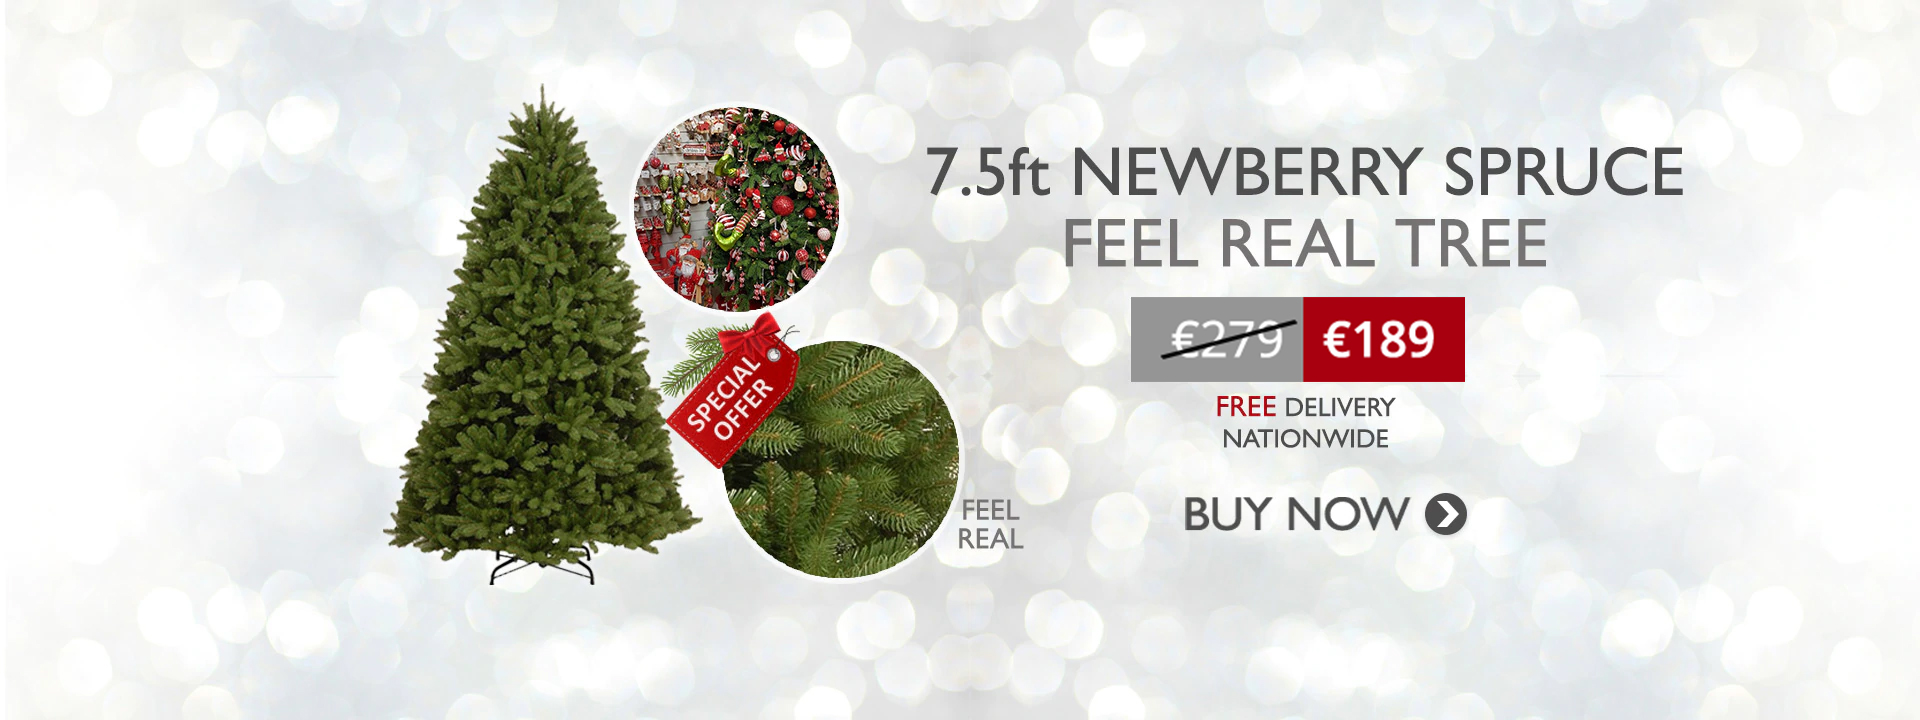 7.5ft Newberry Spruce Christmas Tree only €189.00